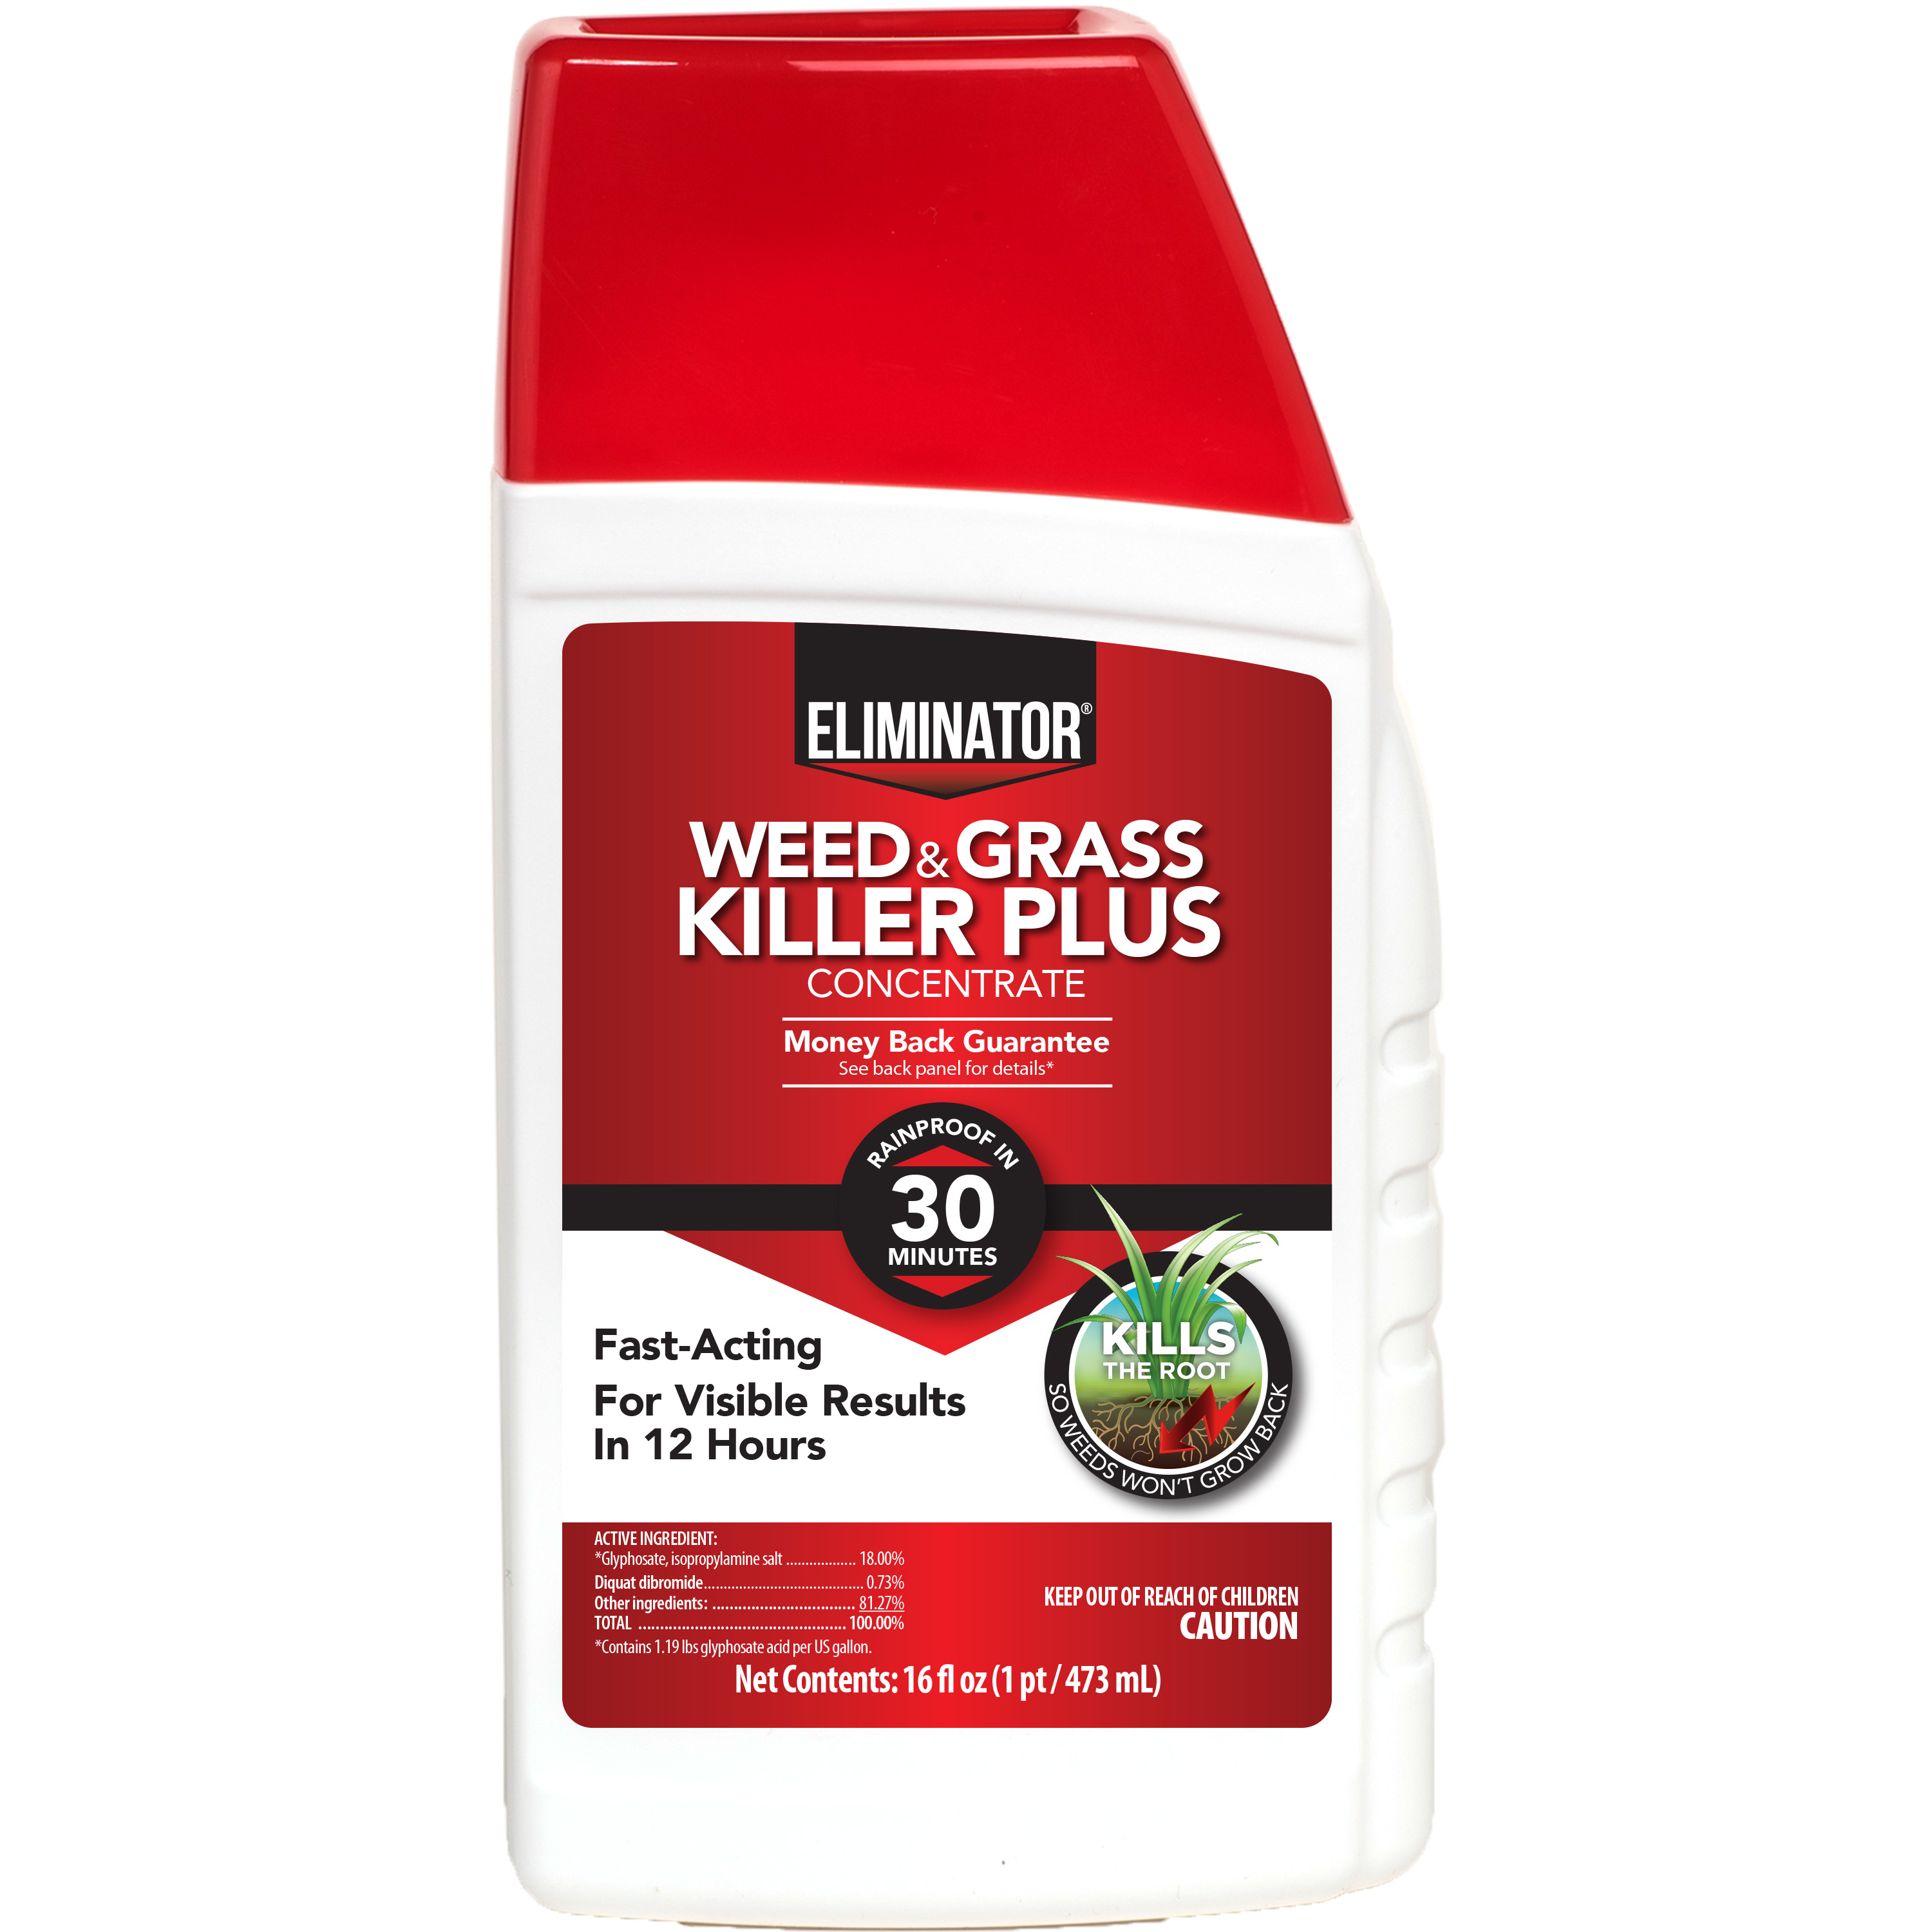 Eliminator Weed and Grass Killer Plus Concentrate